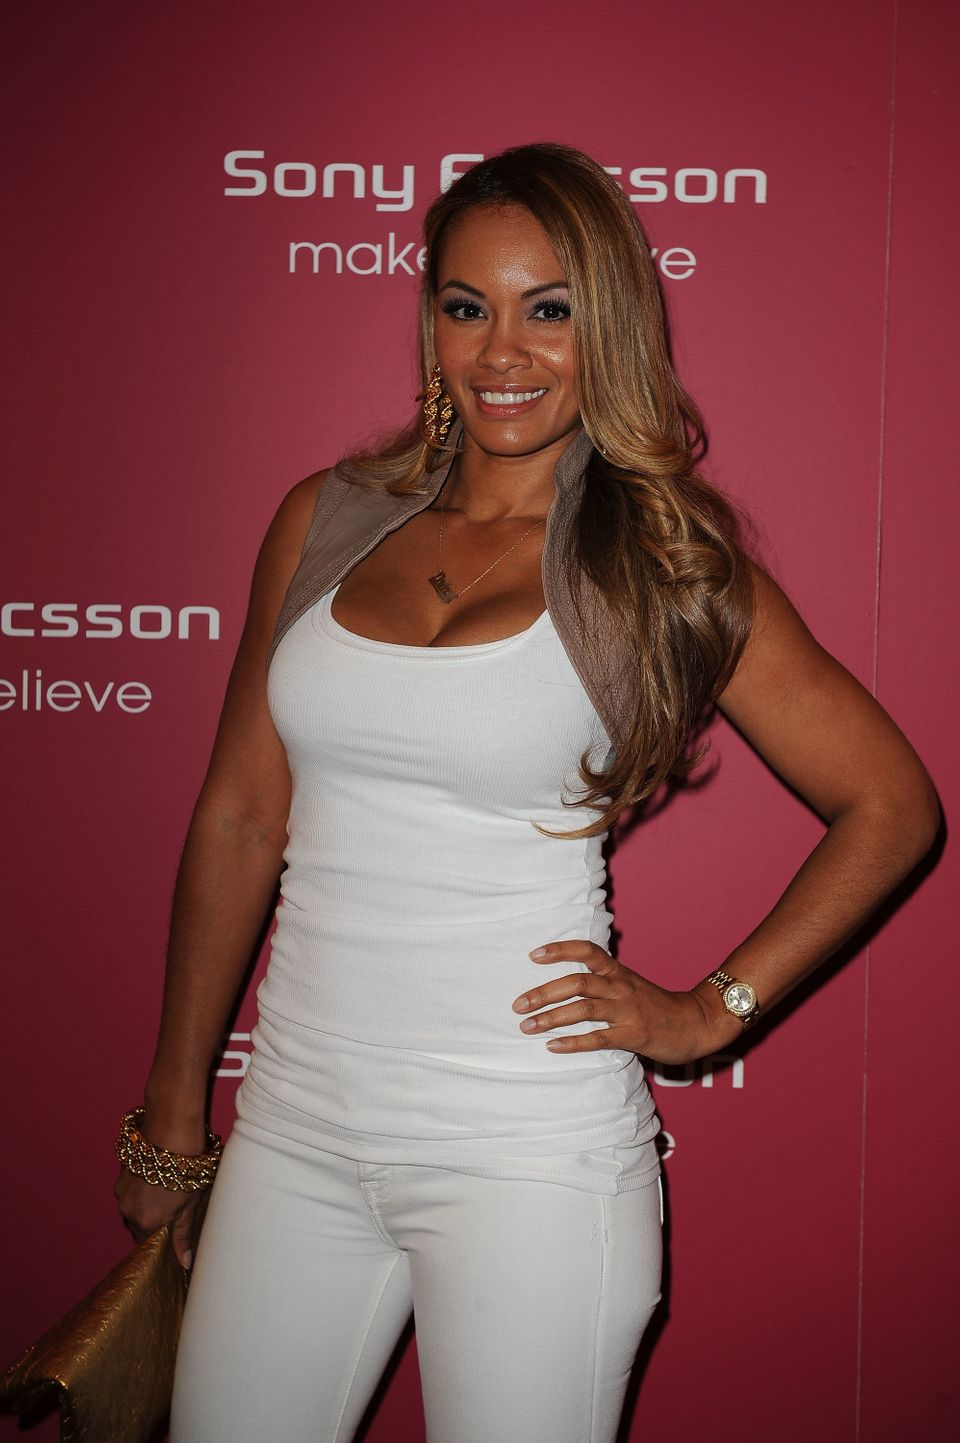 MIAMI BEACH, FL - MARCH 23: Evelyn Lozada attends The Sony Ericsson Open Kick-Off Party at LIV nightclub at Fontainebleau Mia